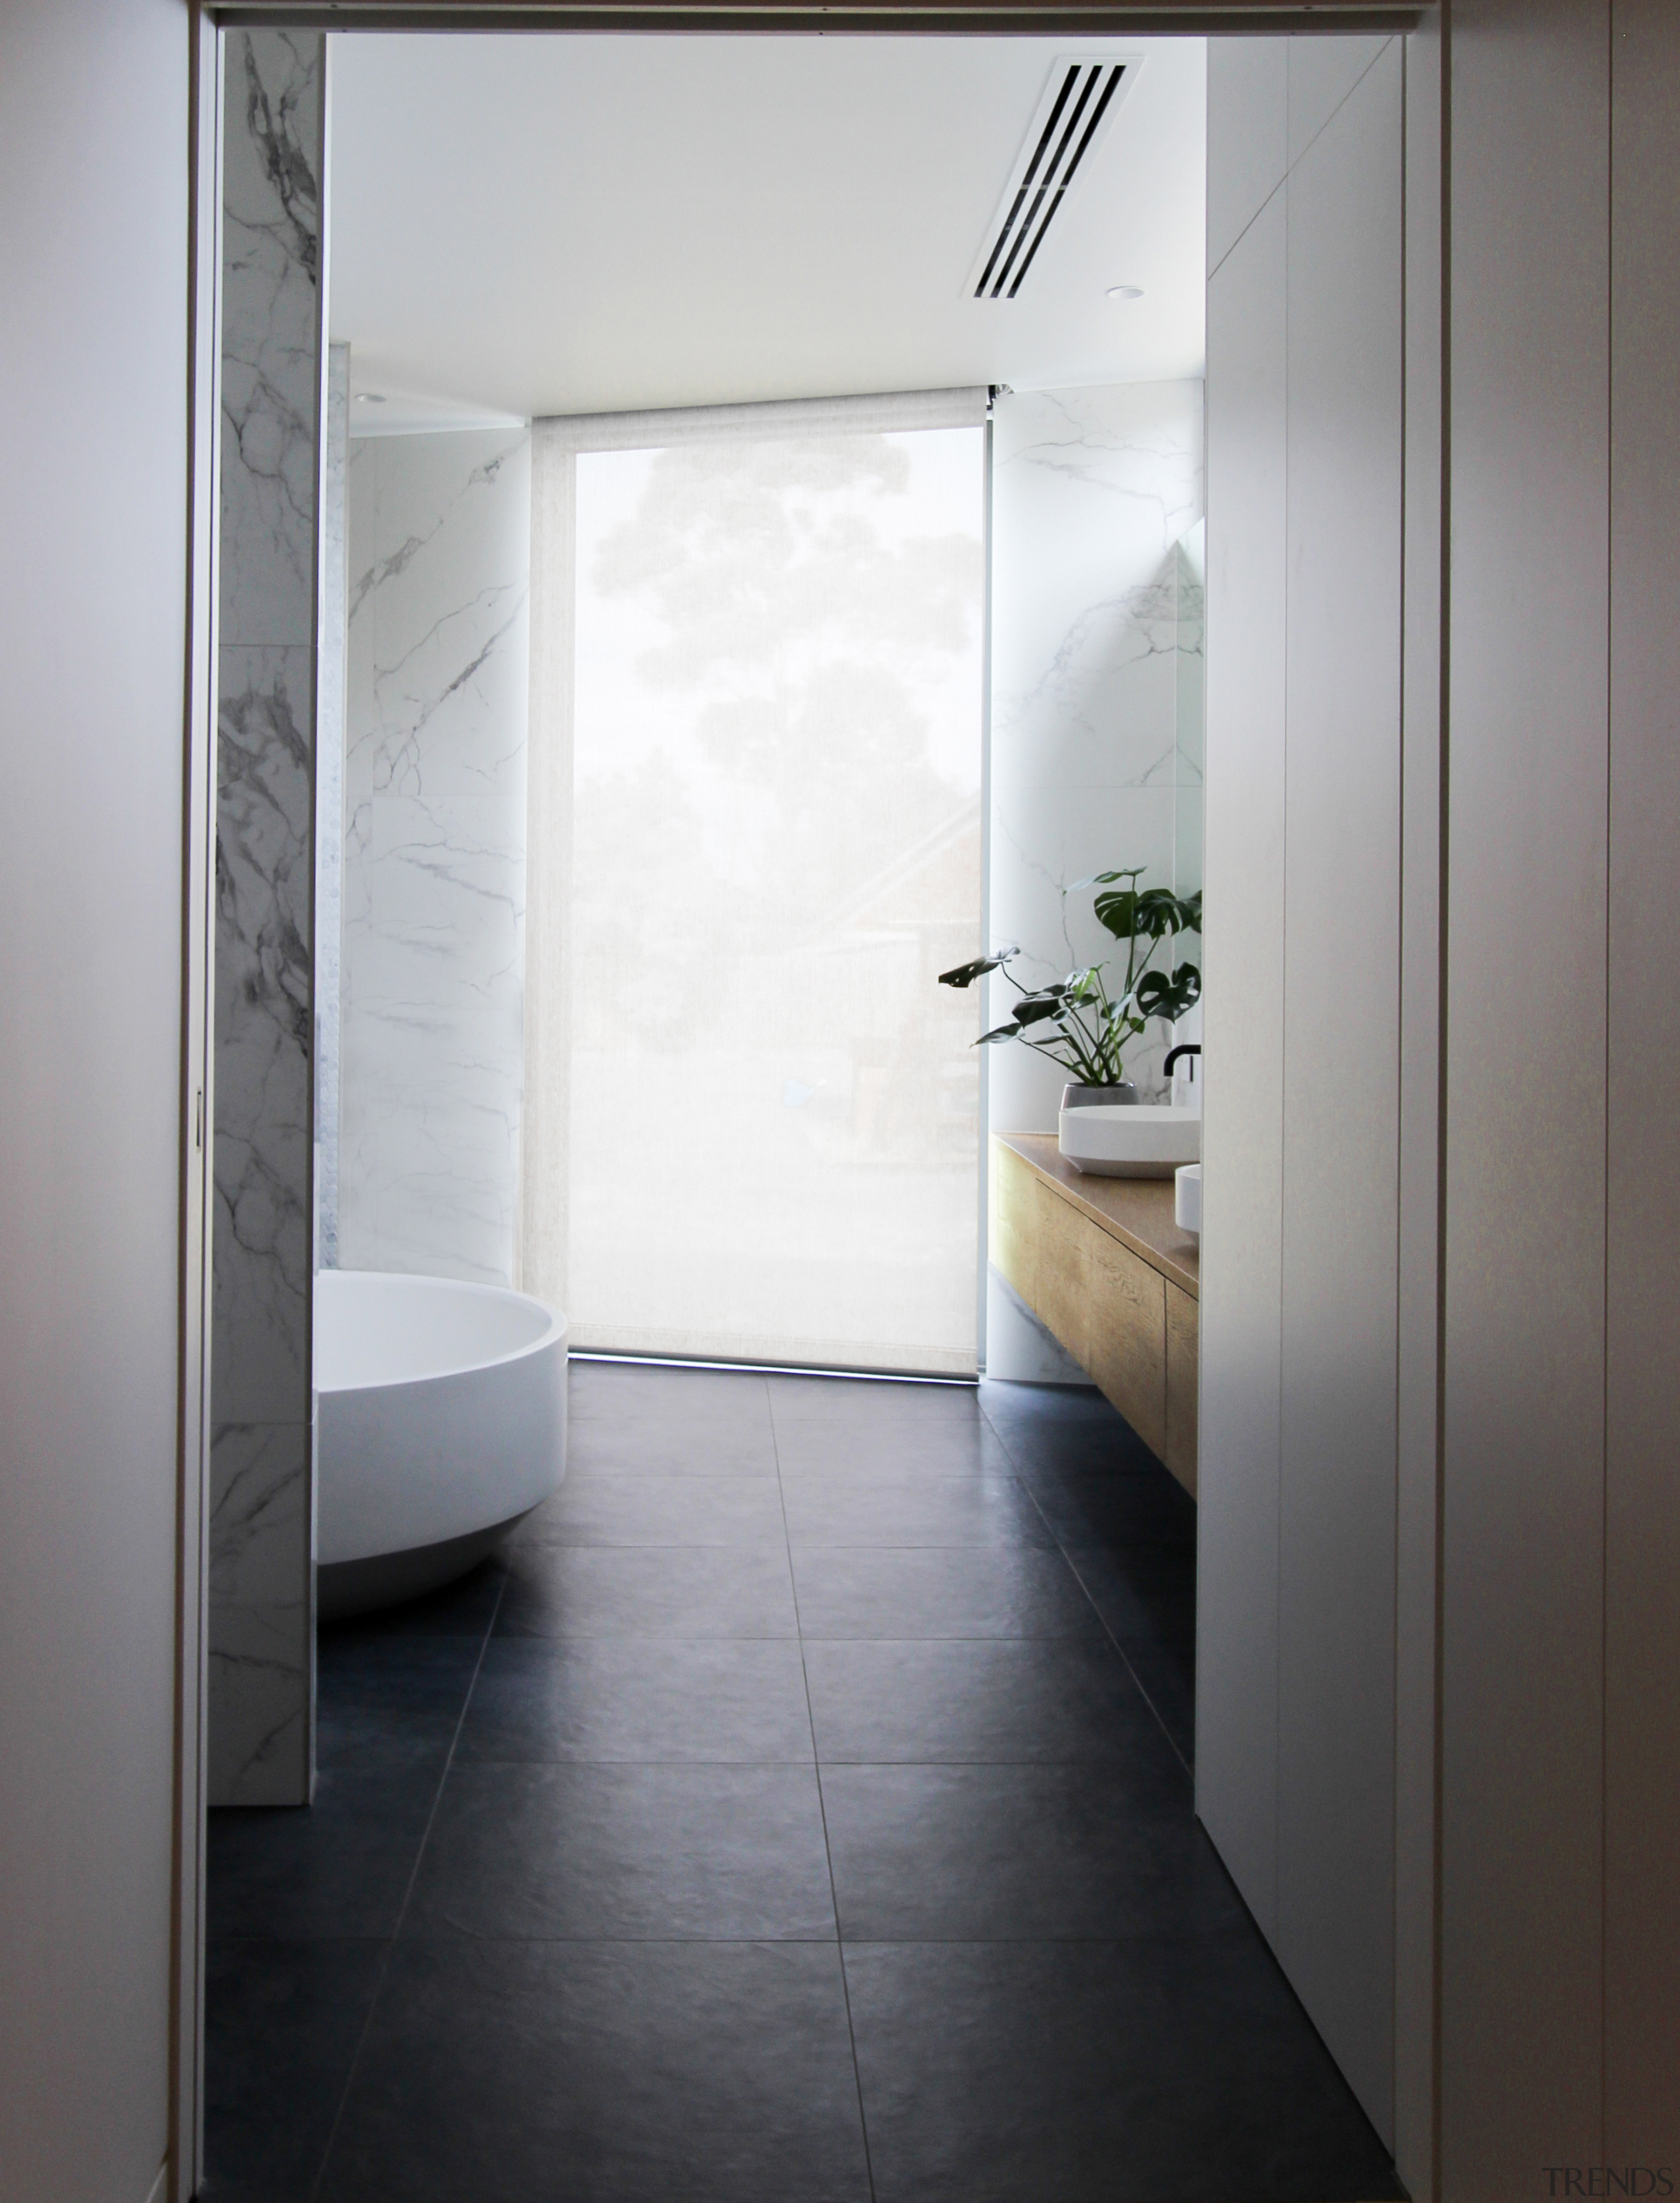 A large inoperable window in this master ensuite gray